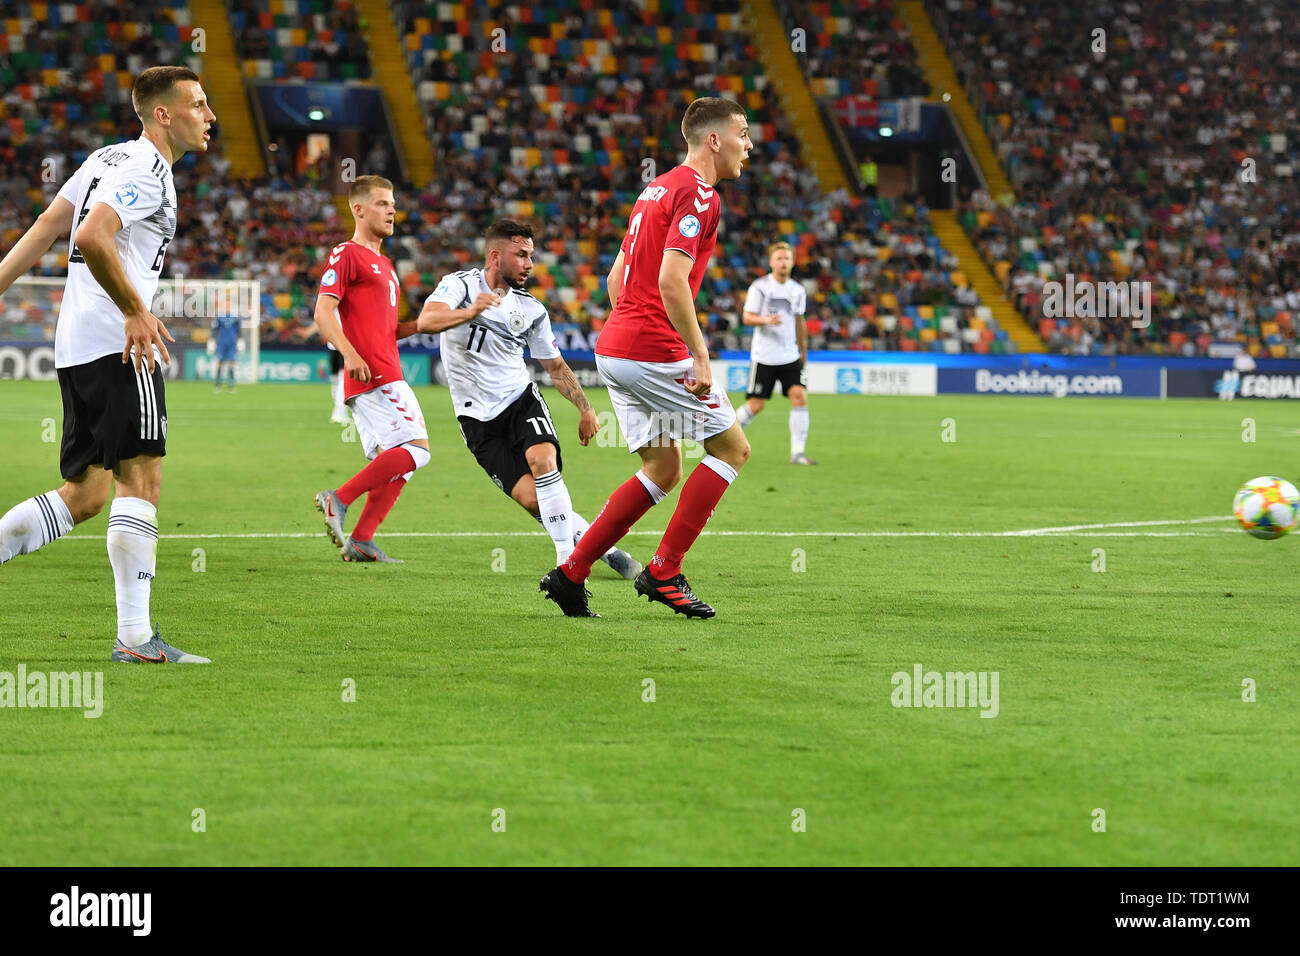 Marco RICHTER (GER) scores the goal to 1-0, Aktion, goalschuss, Germany (GER) -Daenemark (DEN) 3-1, on 17.06.2019 Stadio Friuli Udine. Football U-21, UEFA Under21 European Championship in Italy/SanMarino from 16.-30.06.2019. | Usage worldwide - Stock Image